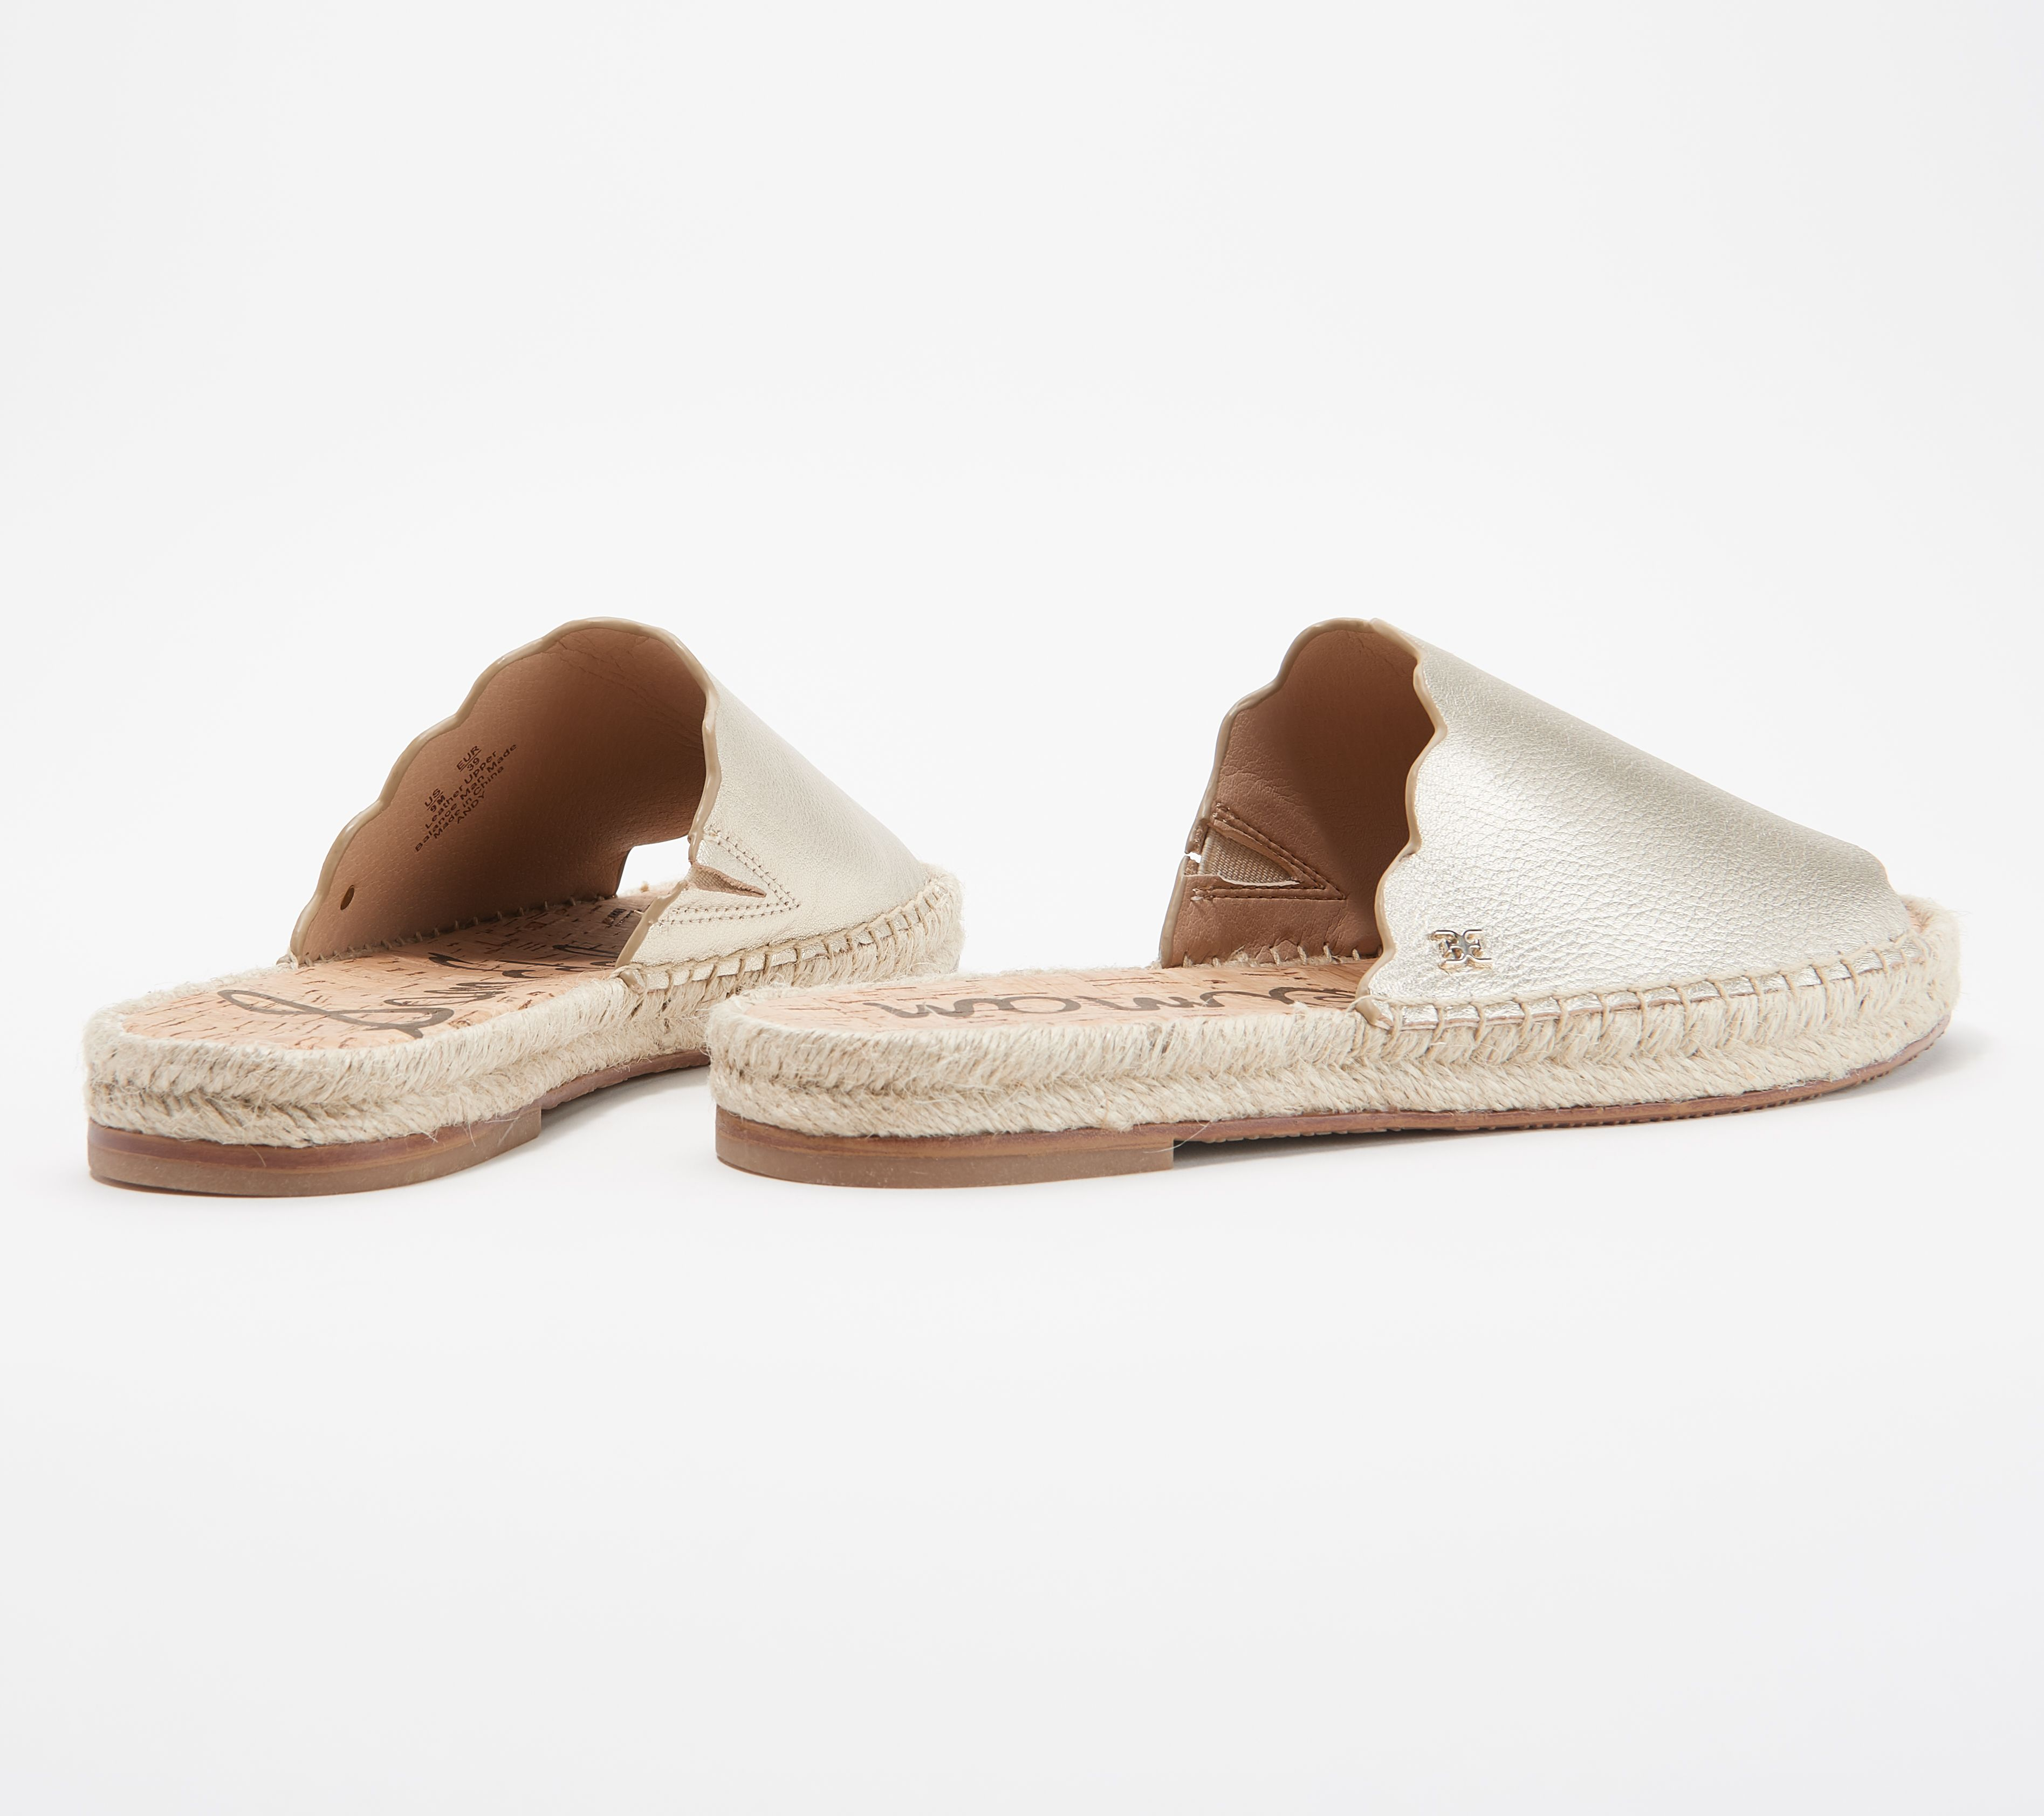 d9efab2c07b Sam Edelman Leather Espadrille Slide Sandals - Andy — QVC.com